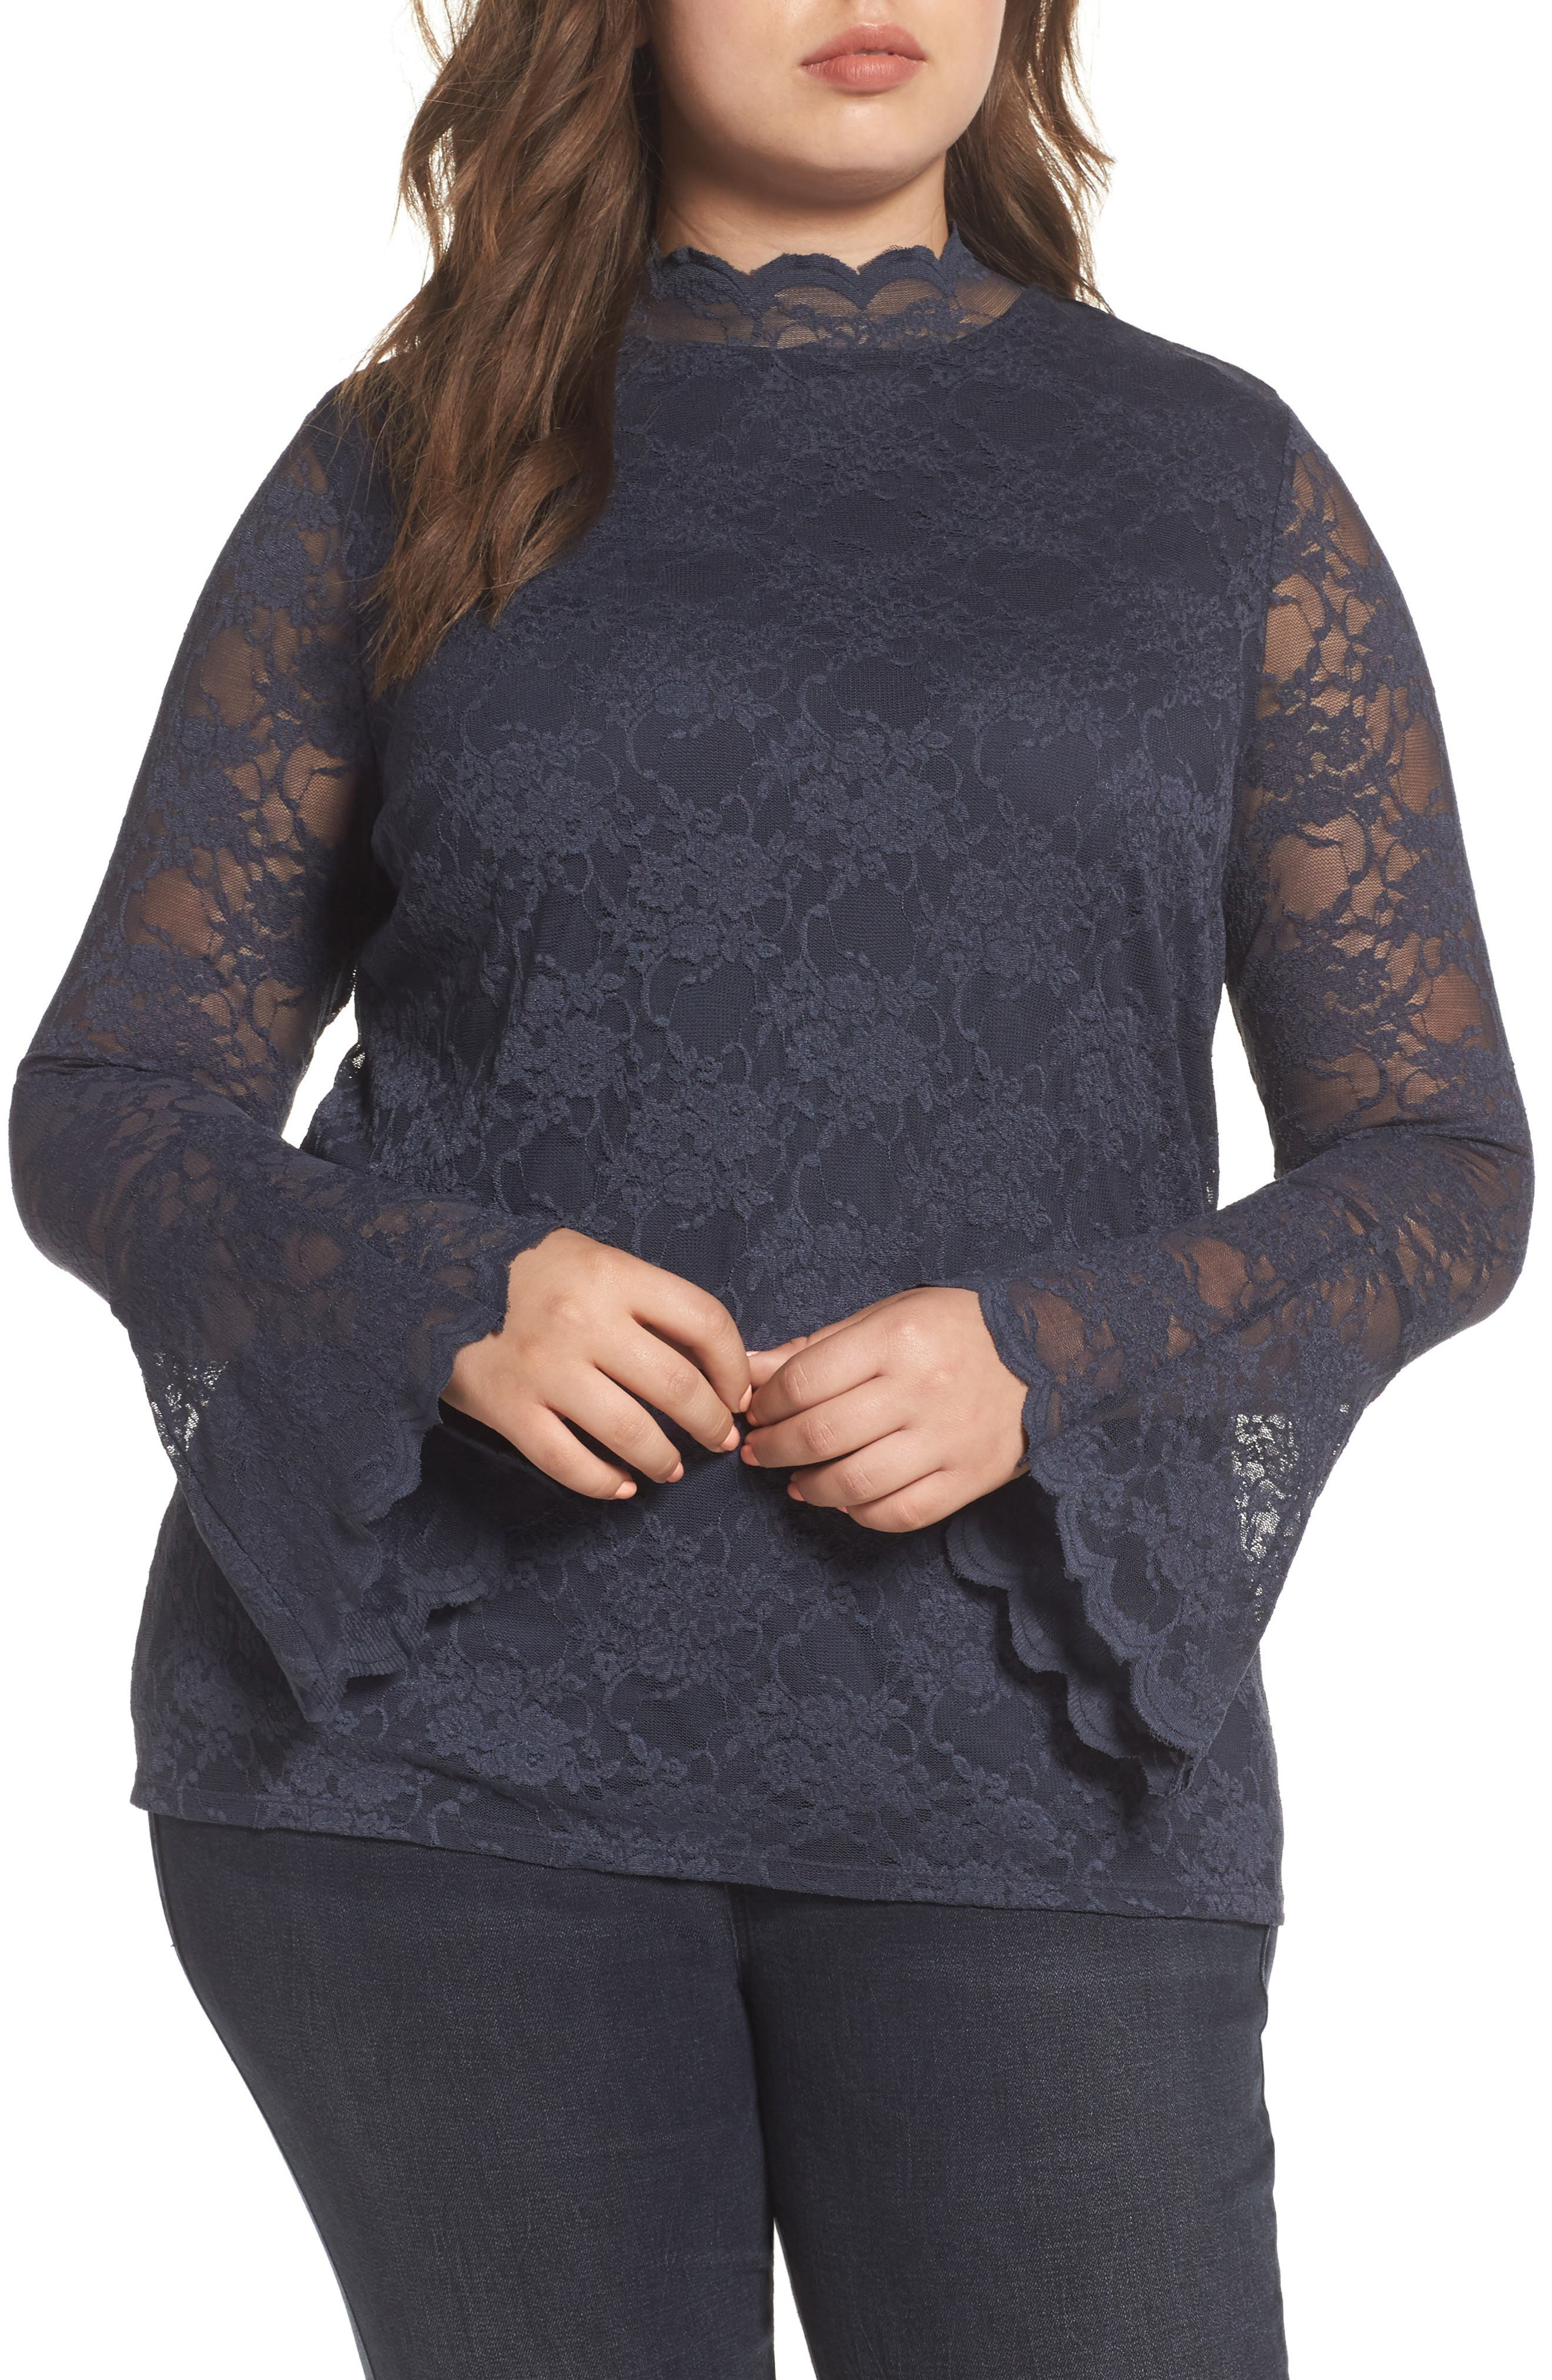 Main Image - Vince Camuto Bell Sleeve Lace Top (Plus Size)